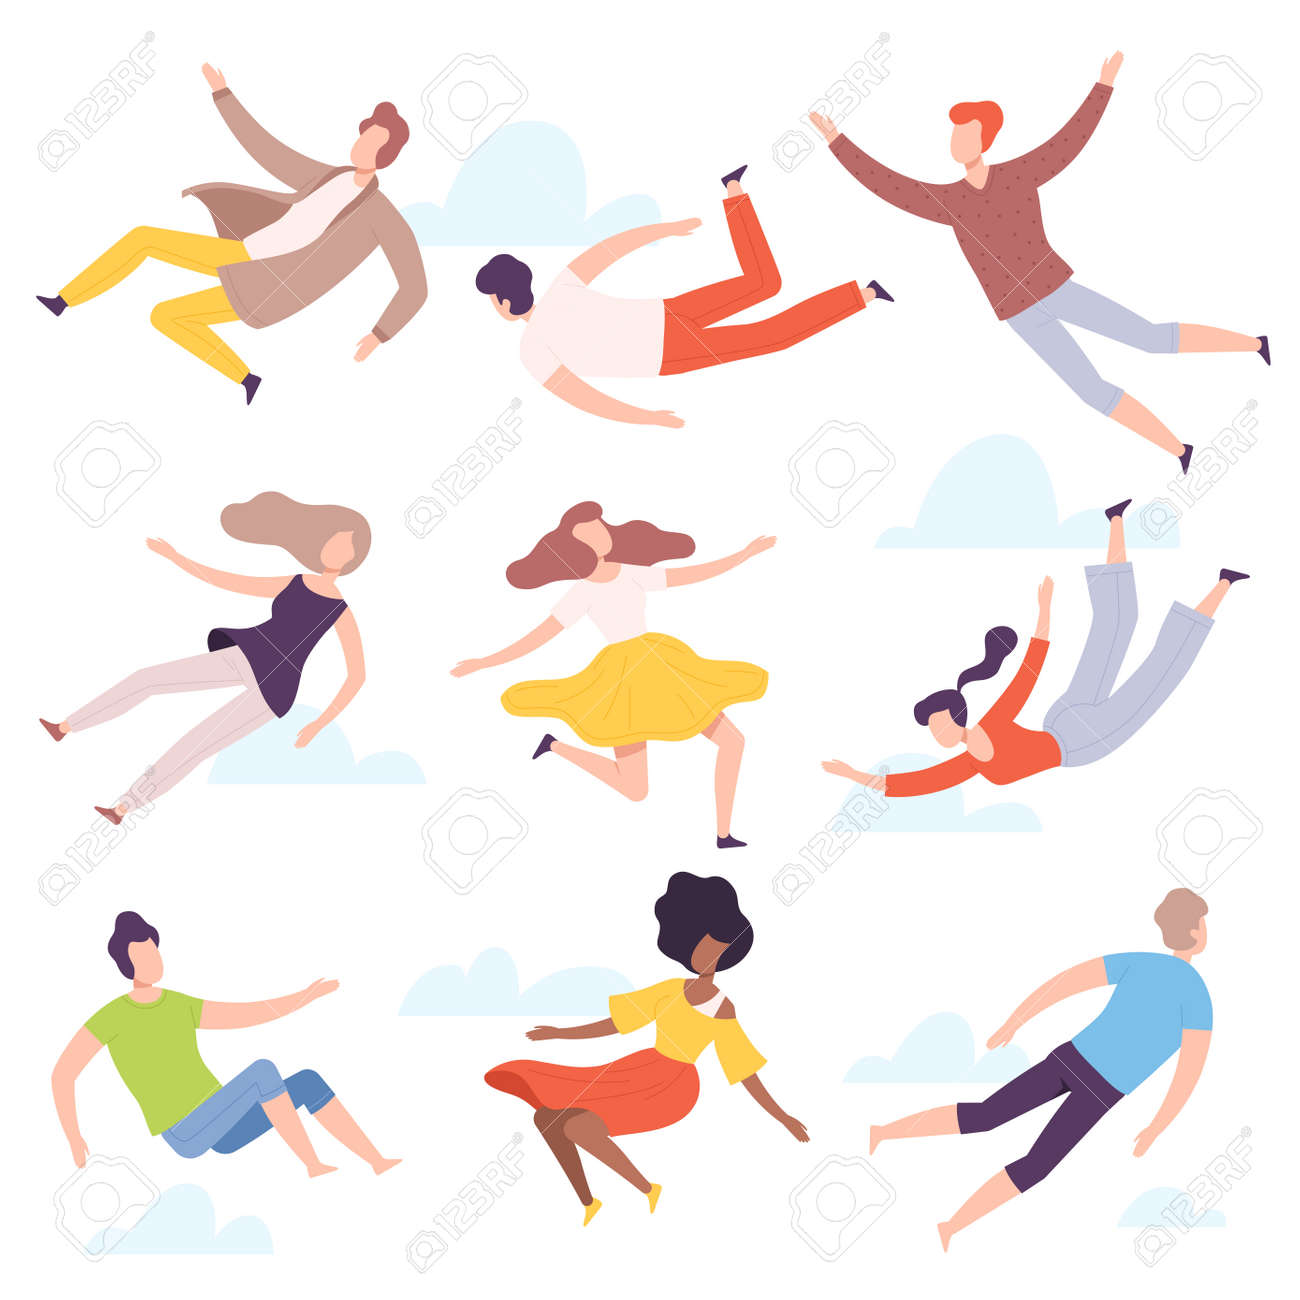 People Characters Flying and Floating in the Air Vector Illustration Set - 158183050